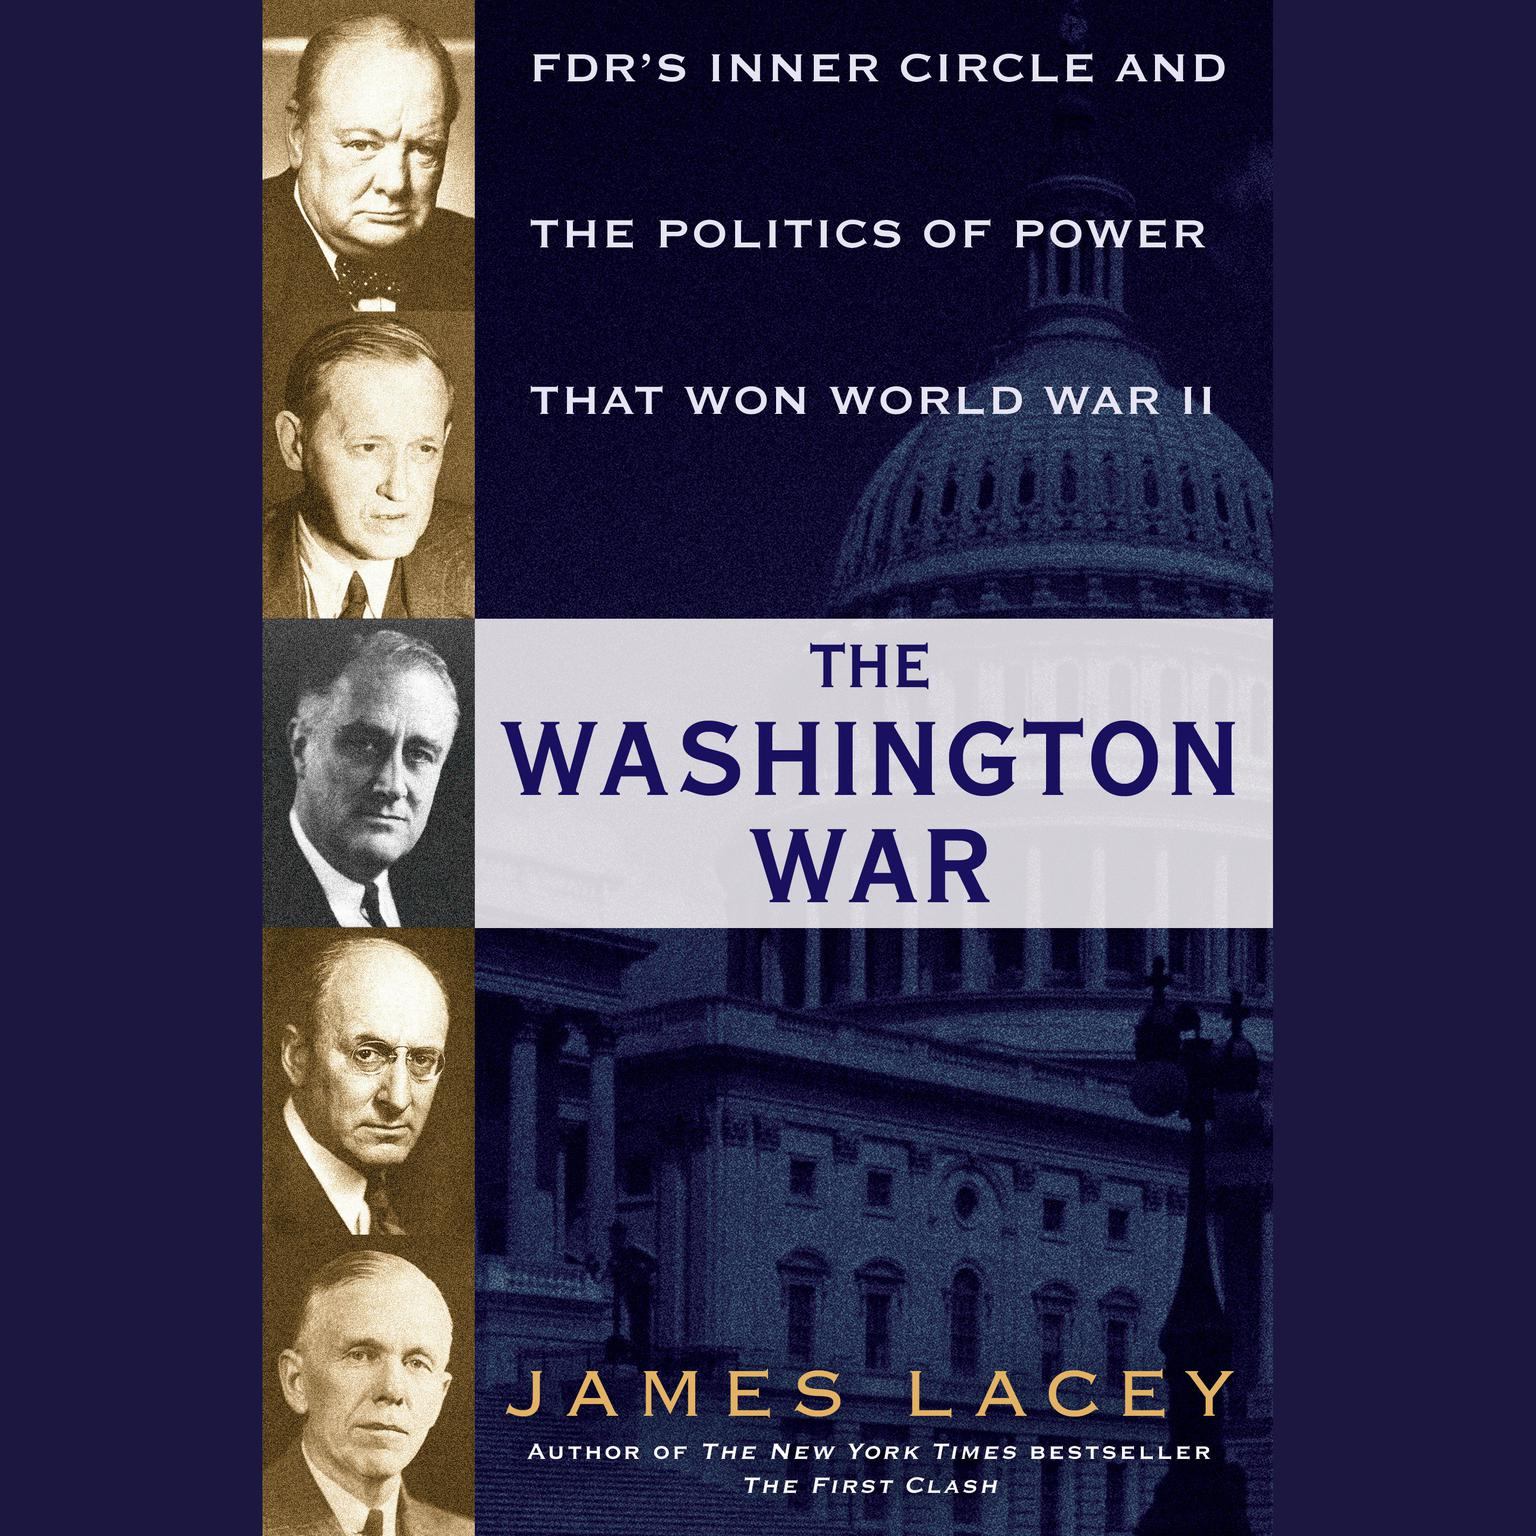 Printable The Washington War: FDR's Inner Circle and the Politics of Power That Won World War II Audiobook Cover Art